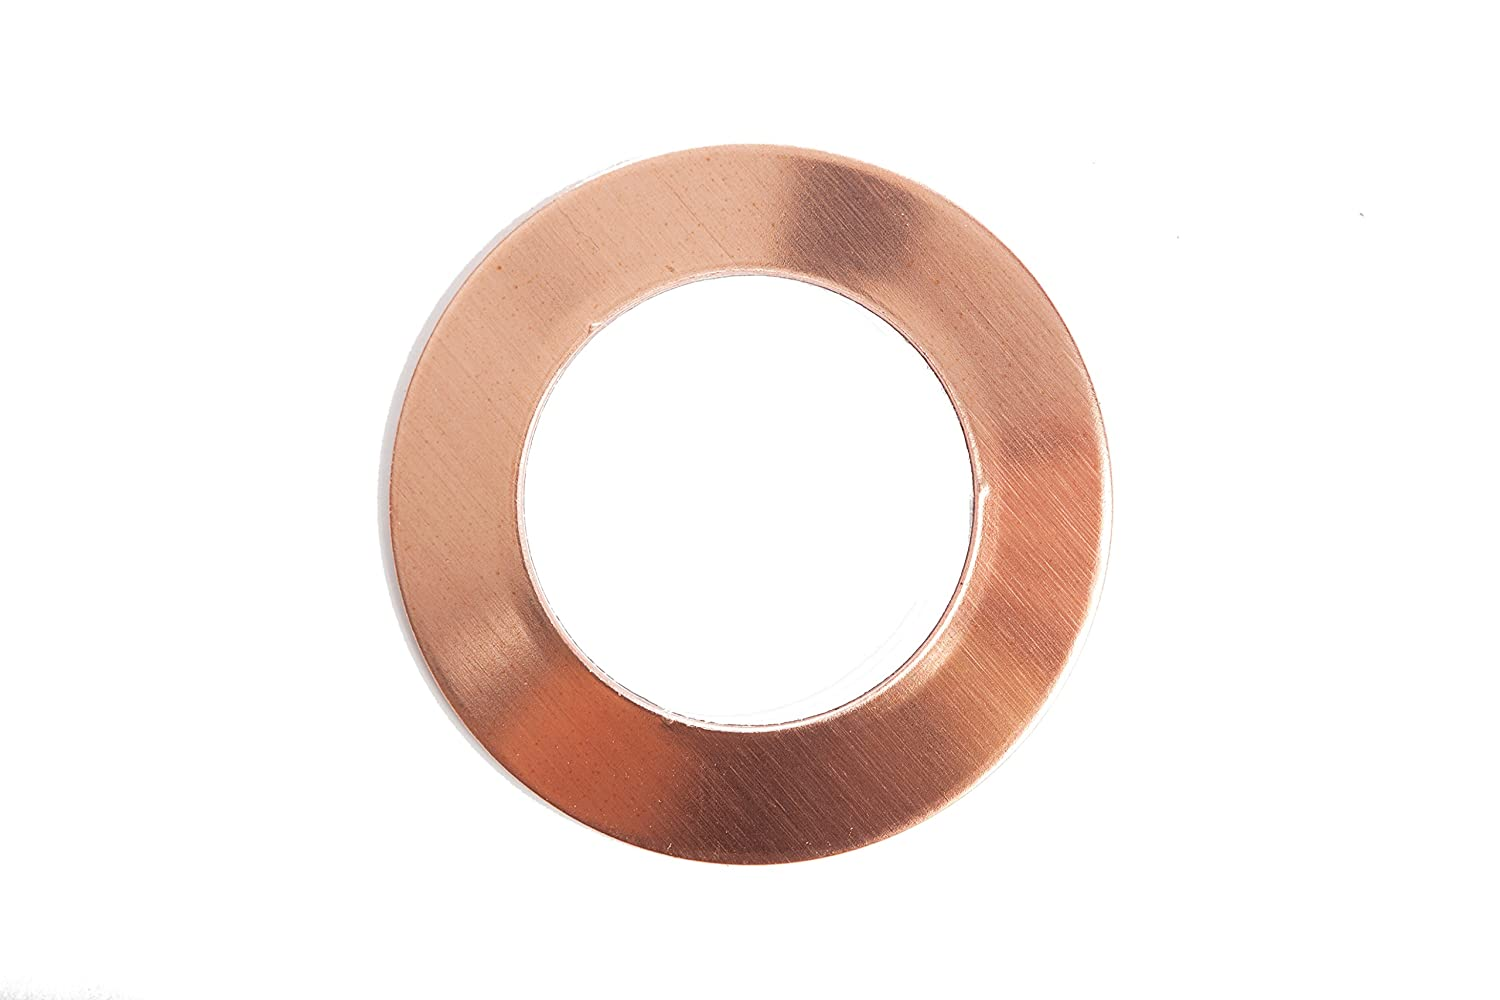 RMP Stamping Blanks, 1 Round Washer, 16 Oz. Copper, 24 Ga., - 10 Pack 1 Round Washer Rose Metal Products 4336835250